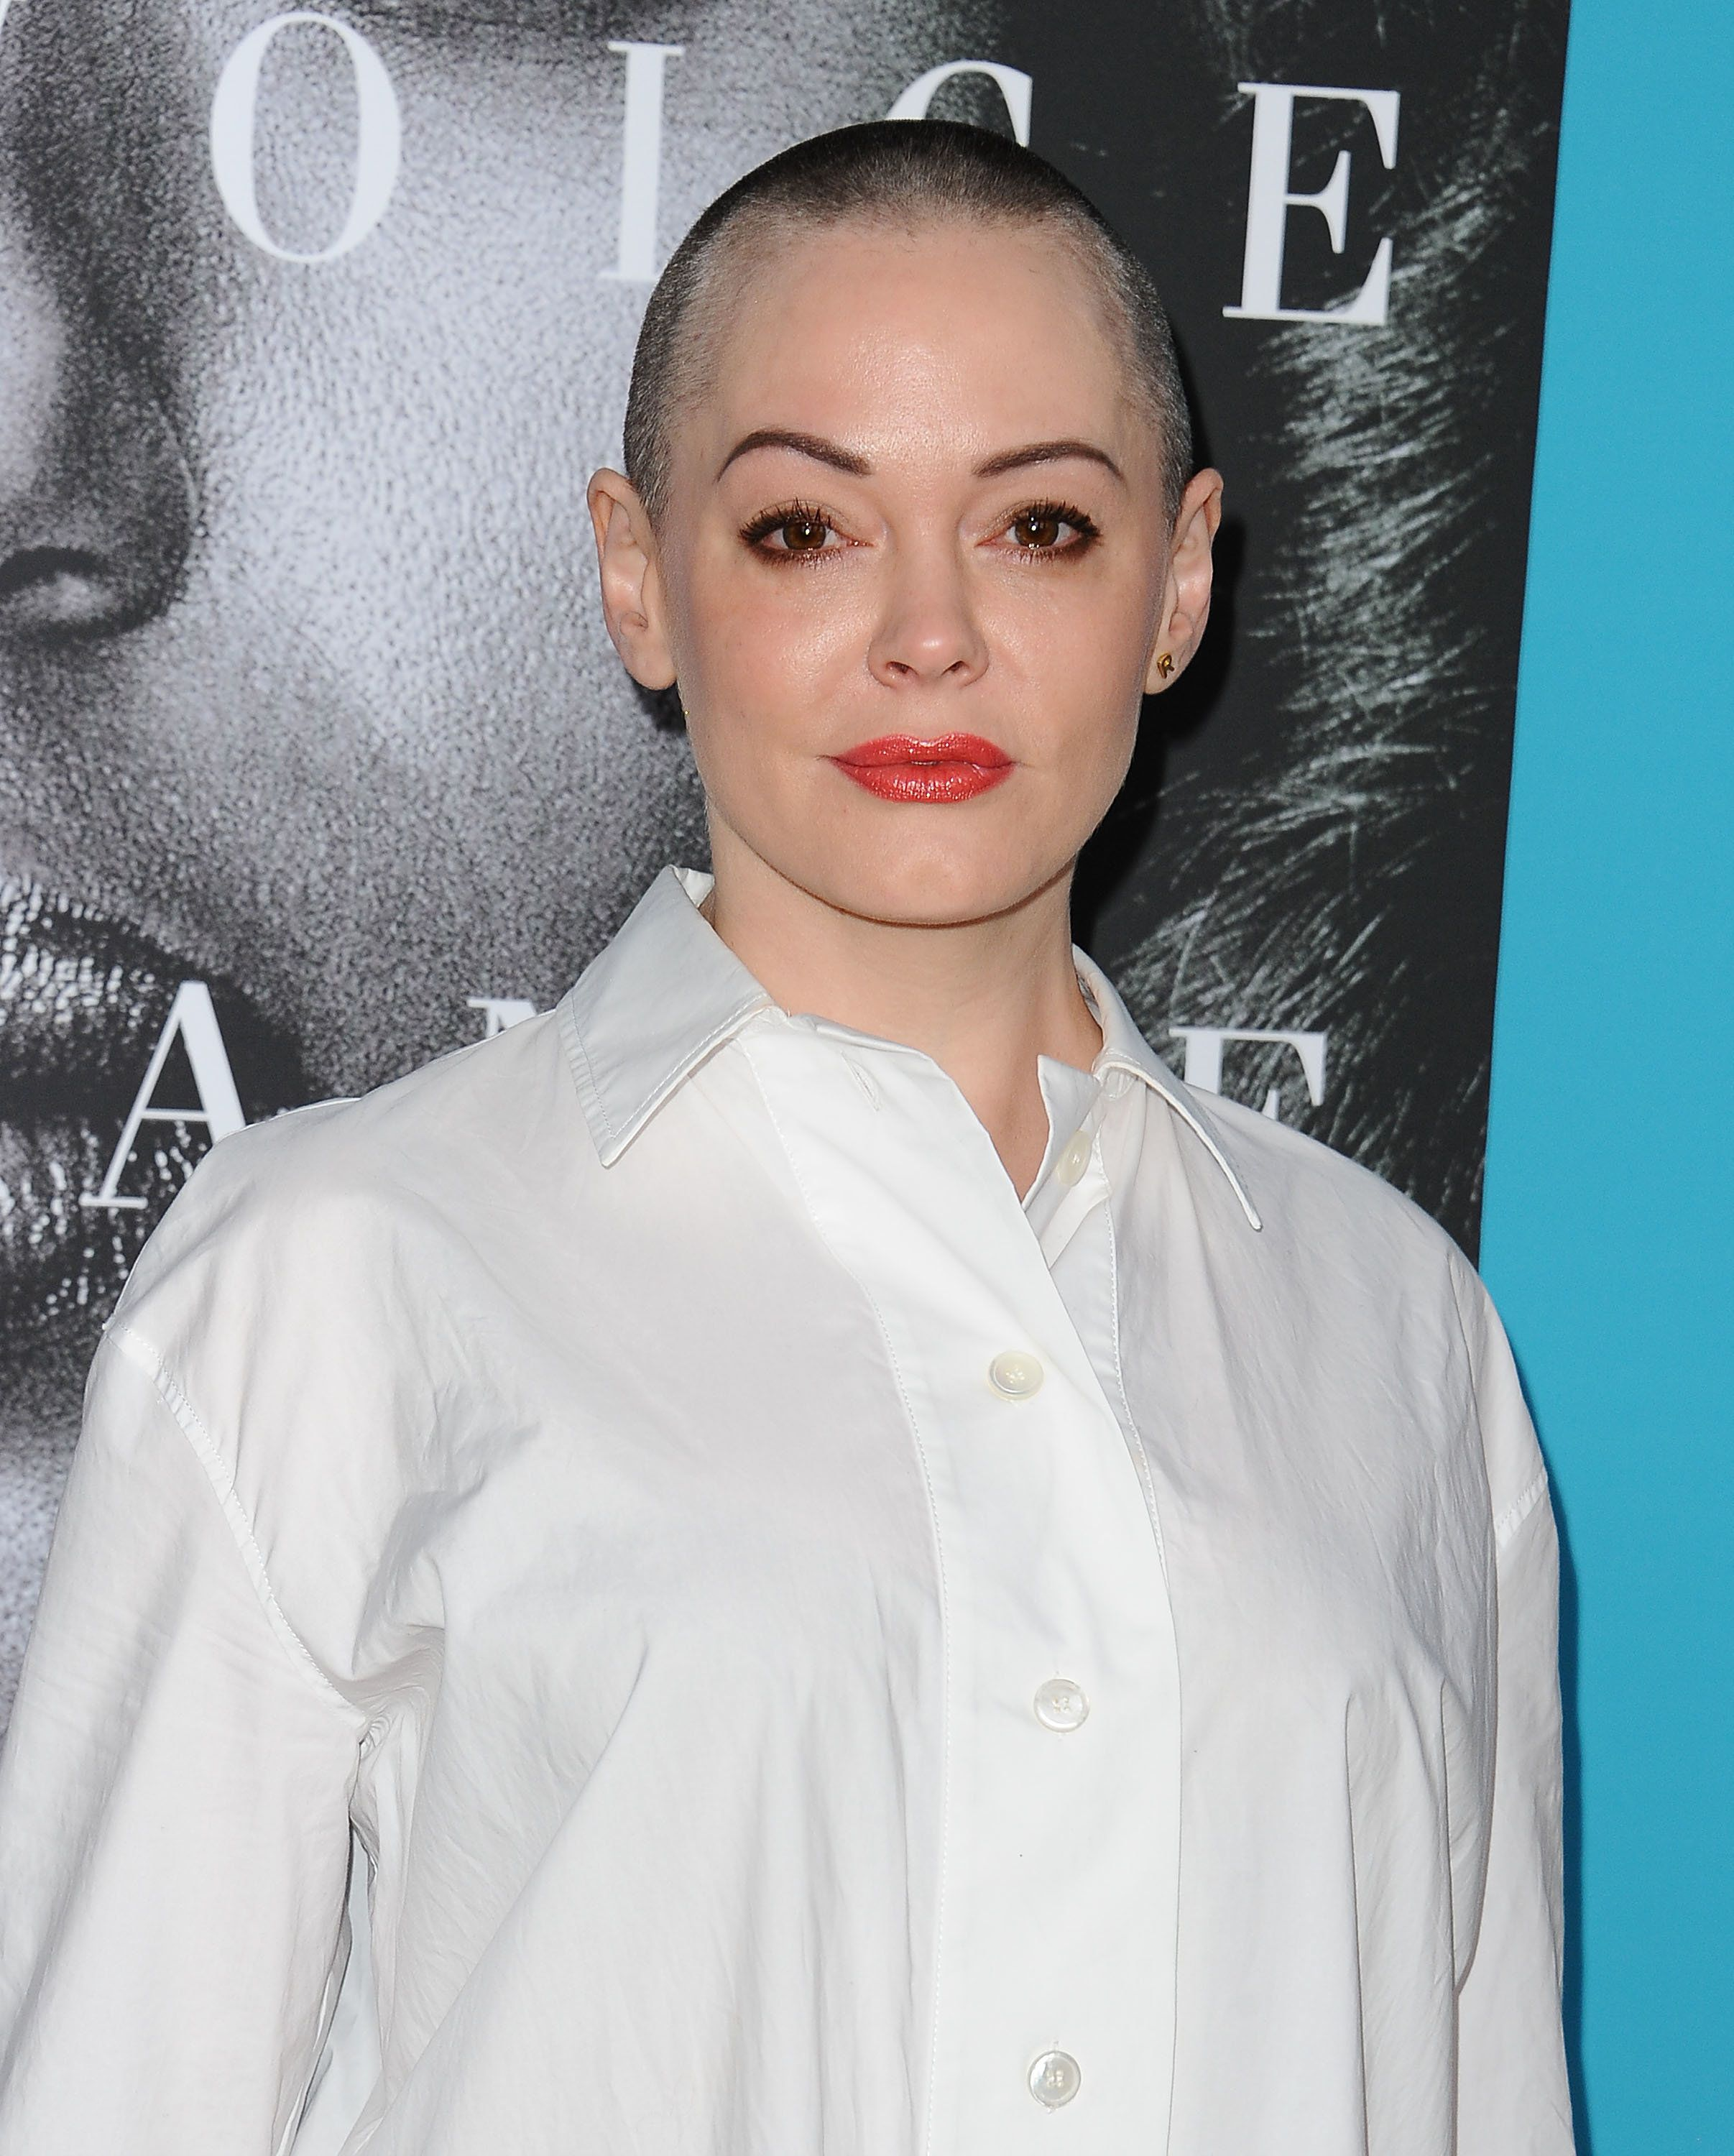 Rose McGowan accuses Harvey Weinstein of rape